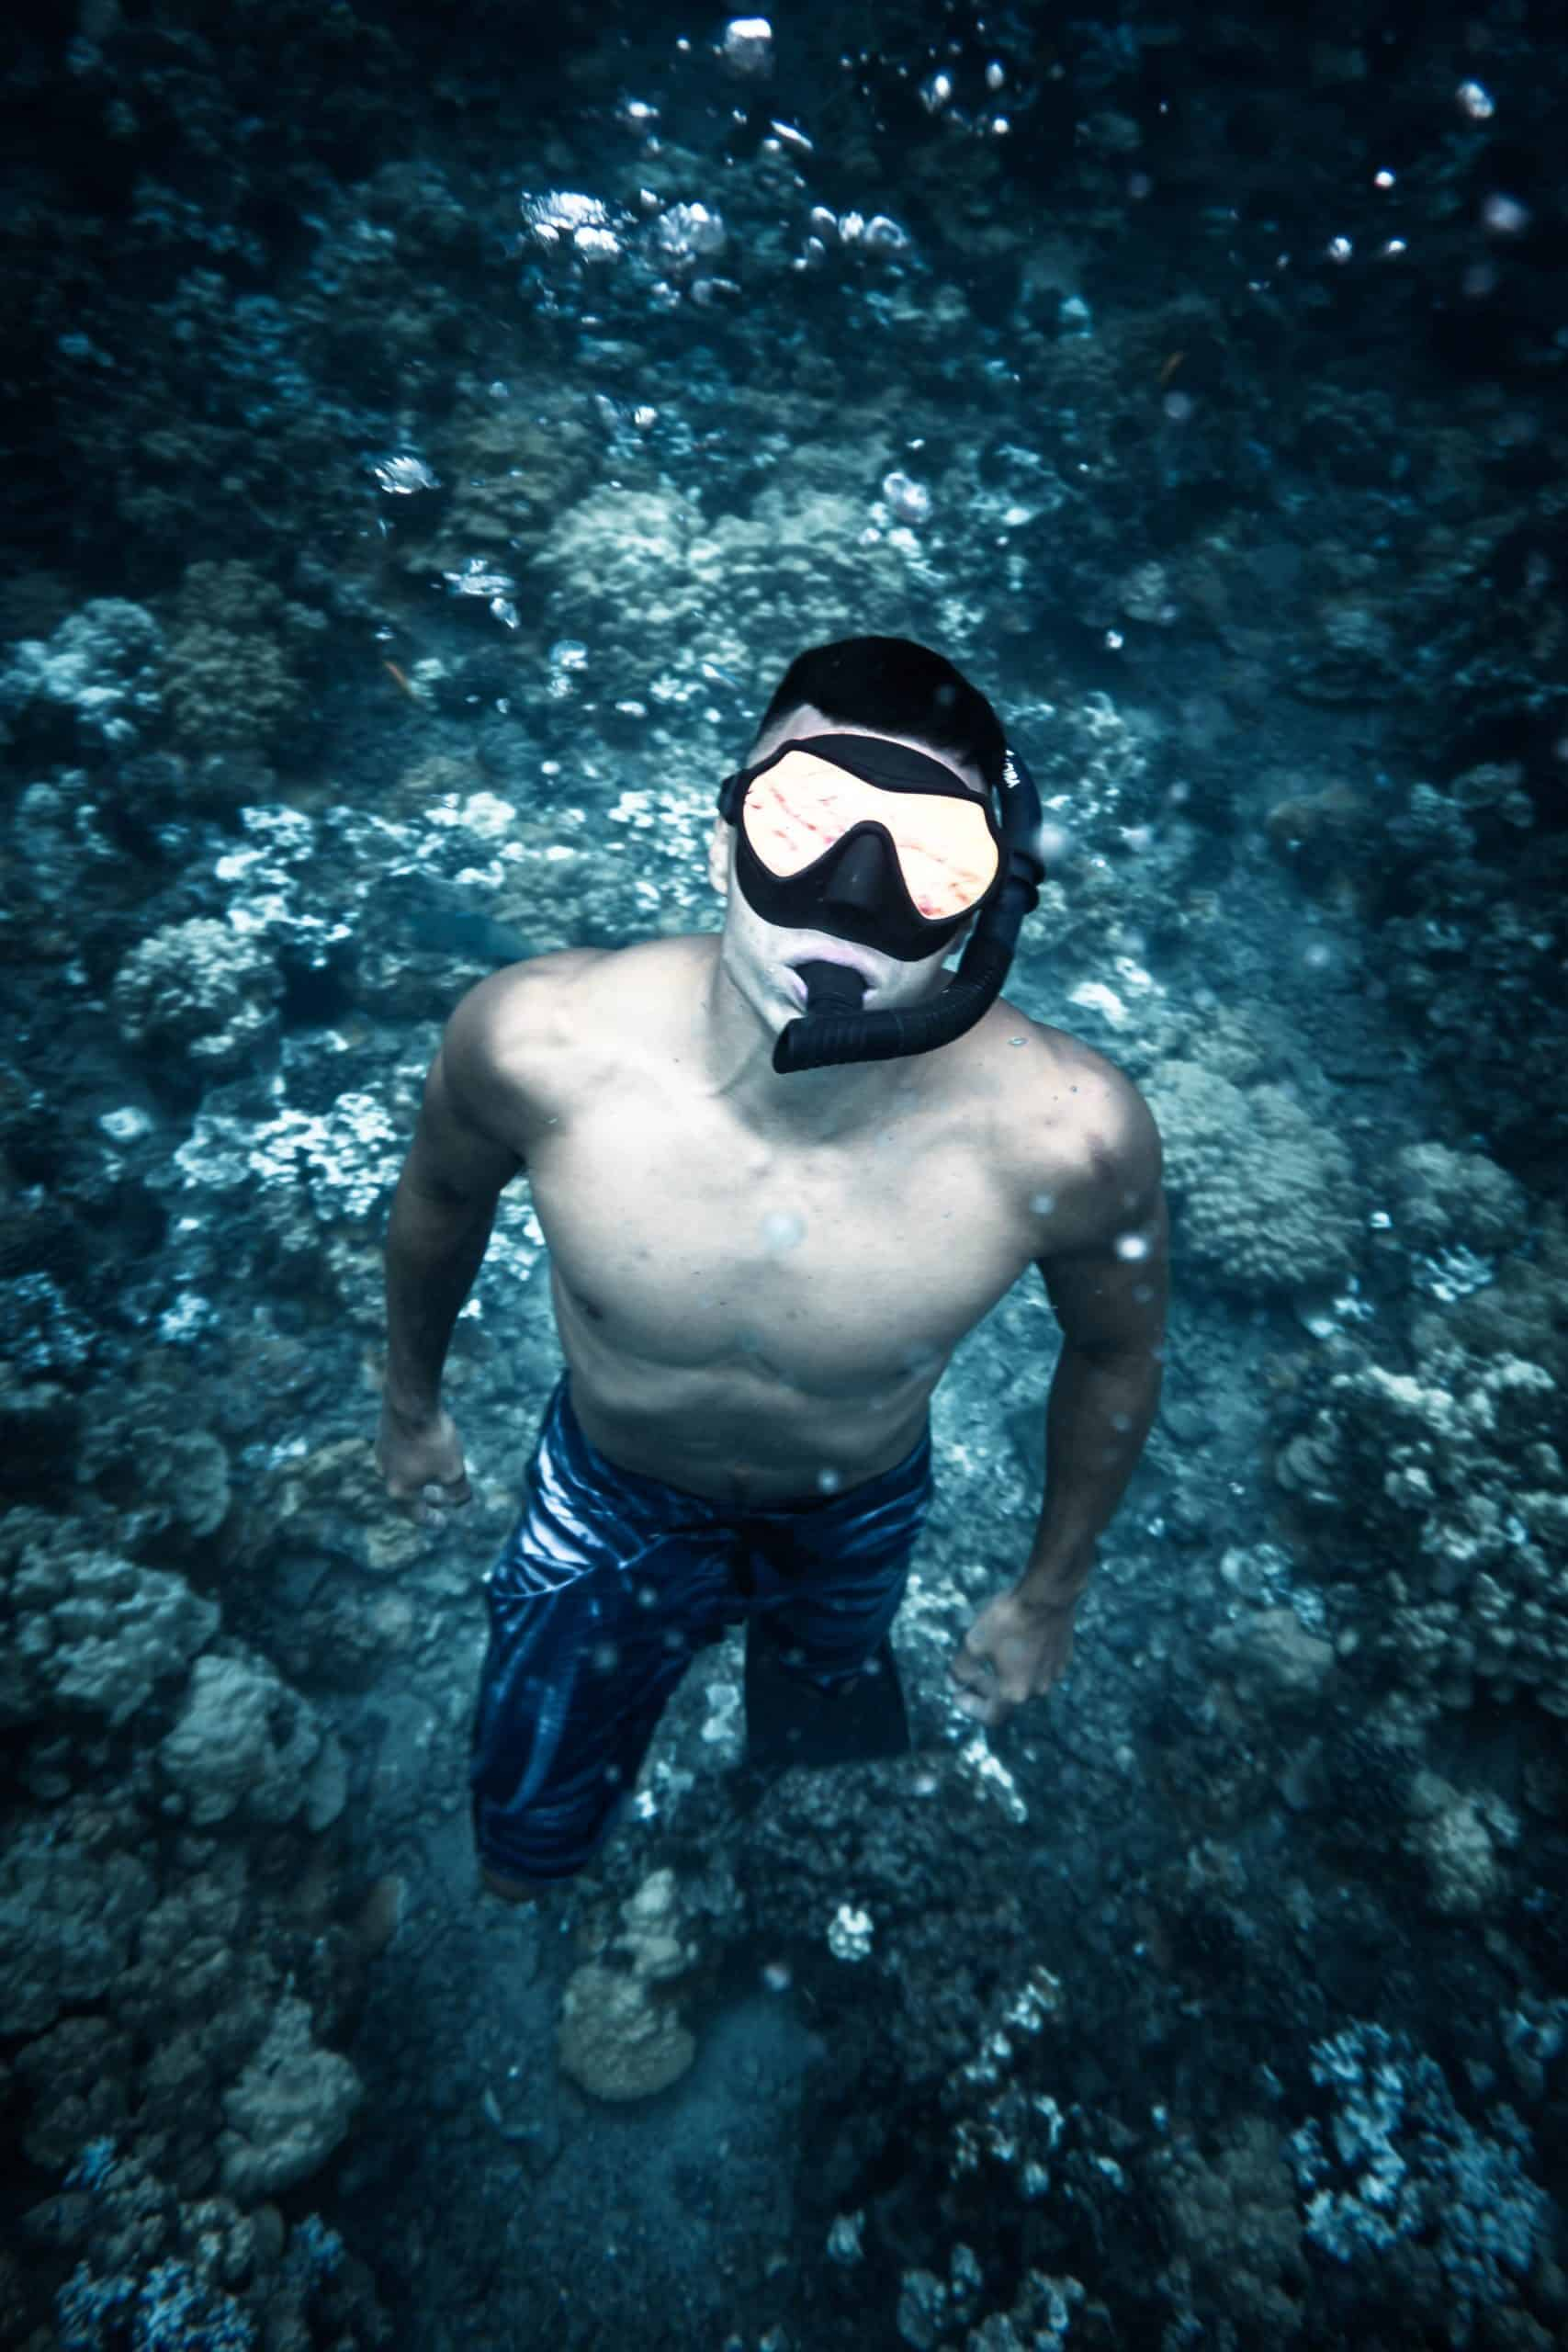 Snorkel Mask: Let's Take A Closer Look